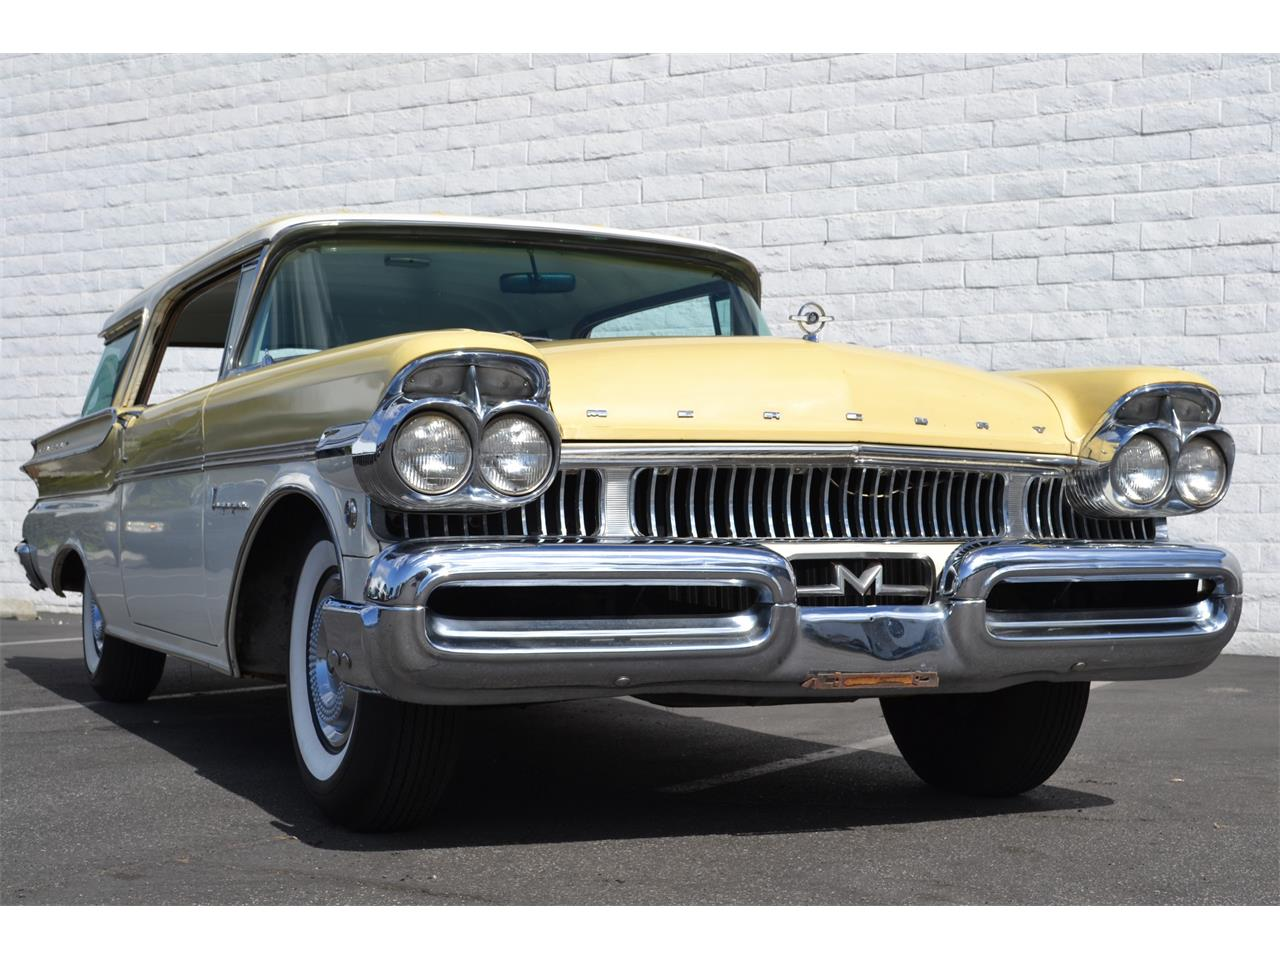 Large Picture of 1957 Mercury Voyager located in California - $54,500.00 Offered by Back in the Day Classics - IZ3U